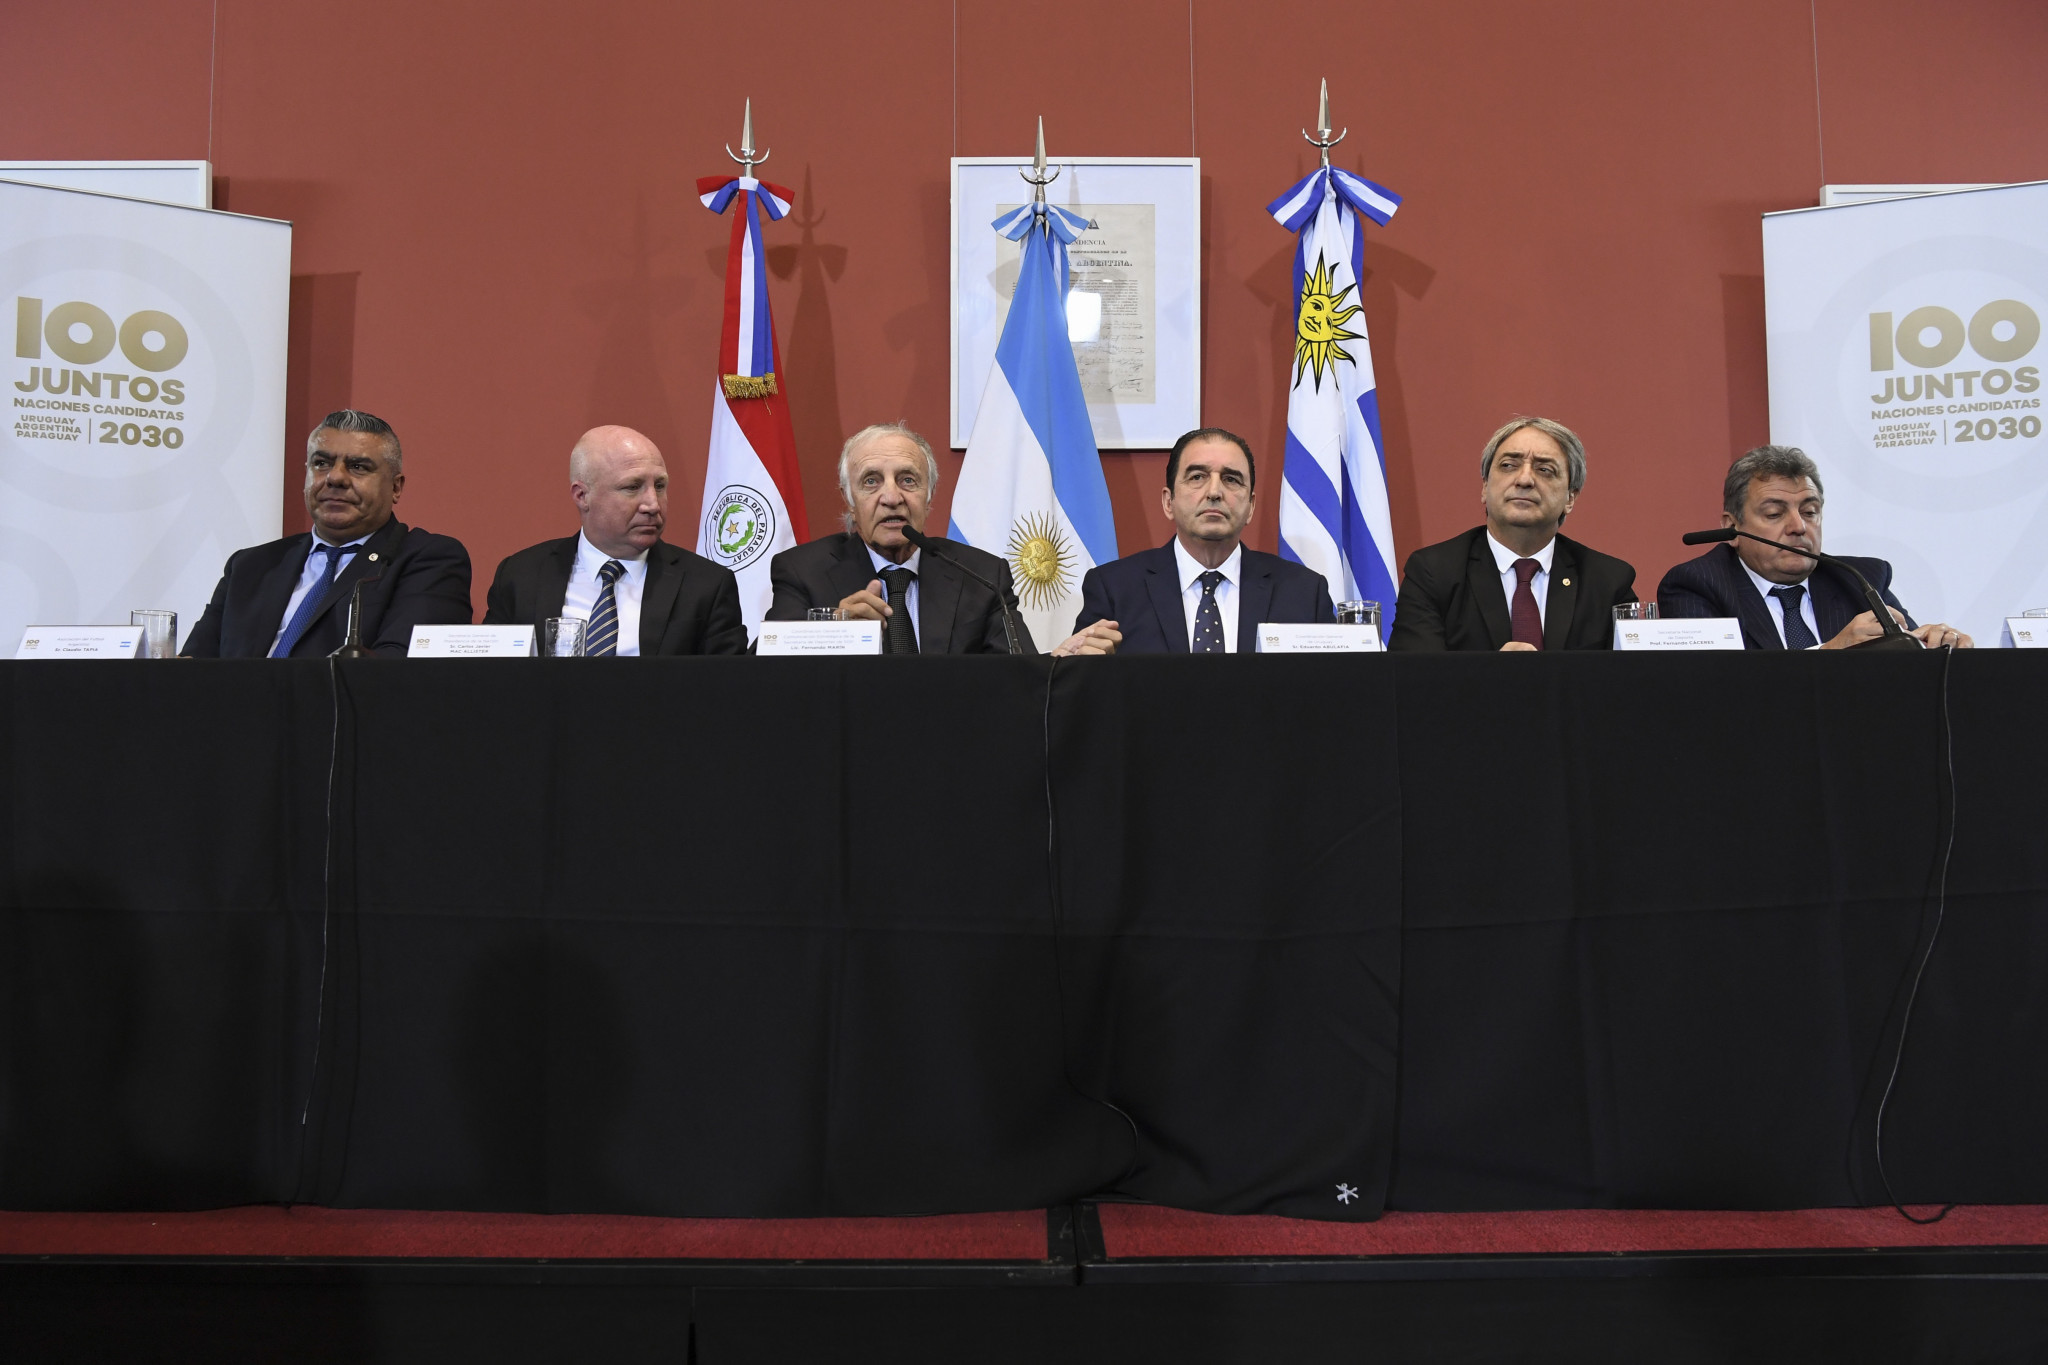 Paraguay, Argentina and Uruguay have already announced plans to bid for the 2030 FIFA World Cup as a trio ©Getty Images